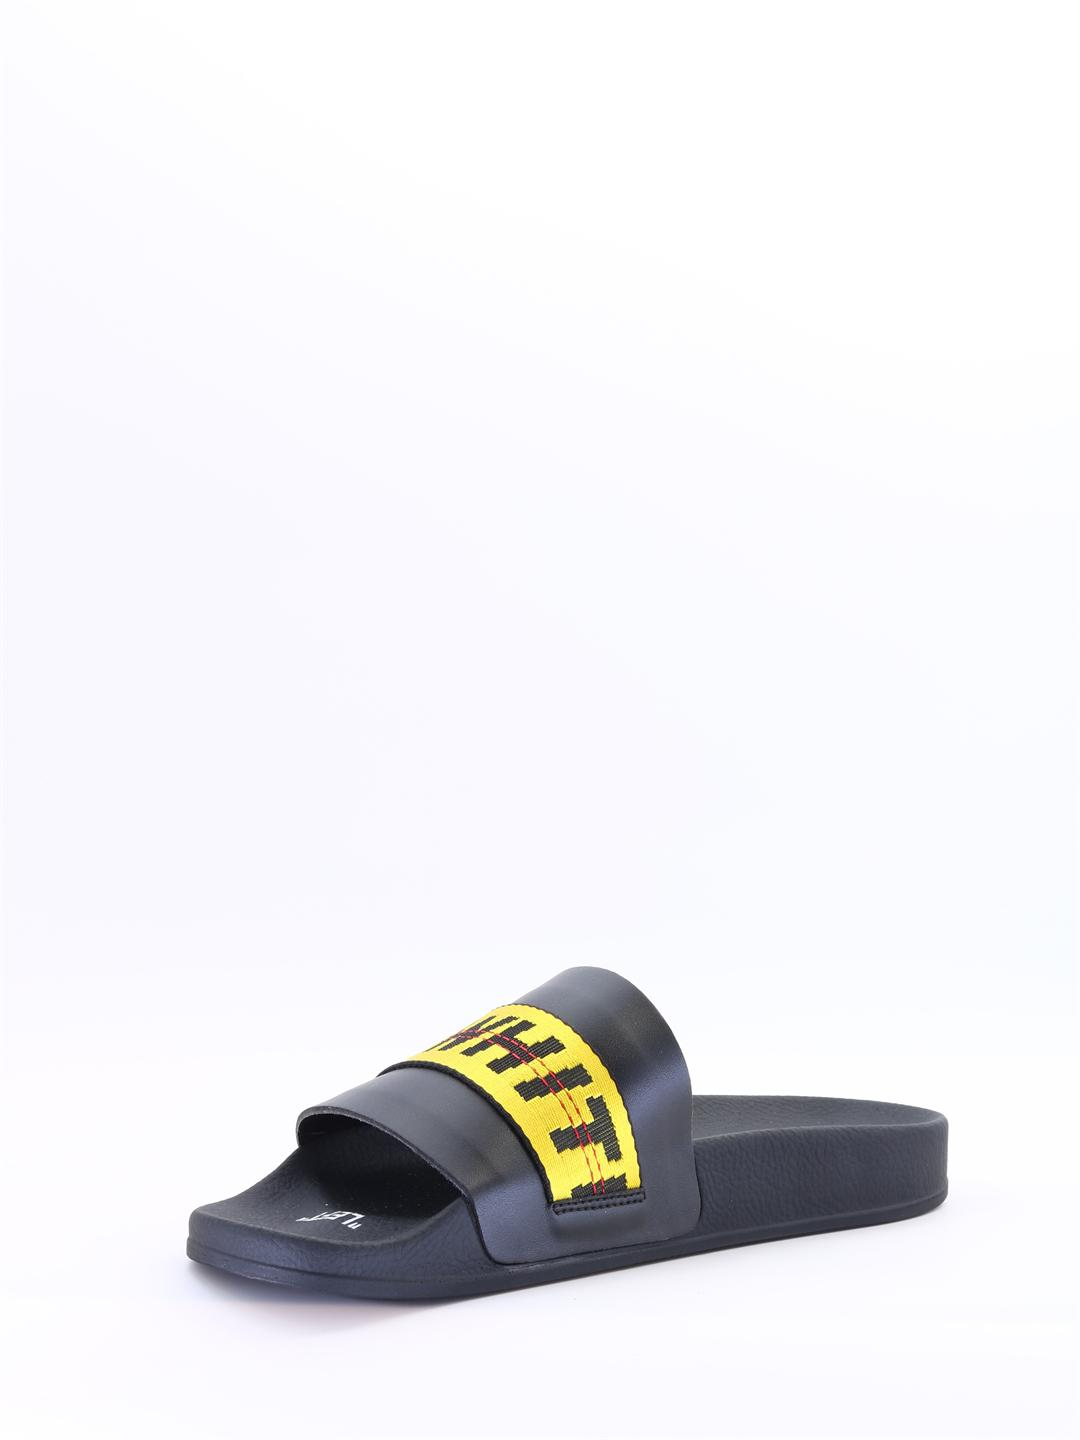 91cd227491cd Off-White C O Virgil Abloh Black And Yellow Industrial Strap Slides in  Black for Men - Save 38.12316715542522% - Lyst